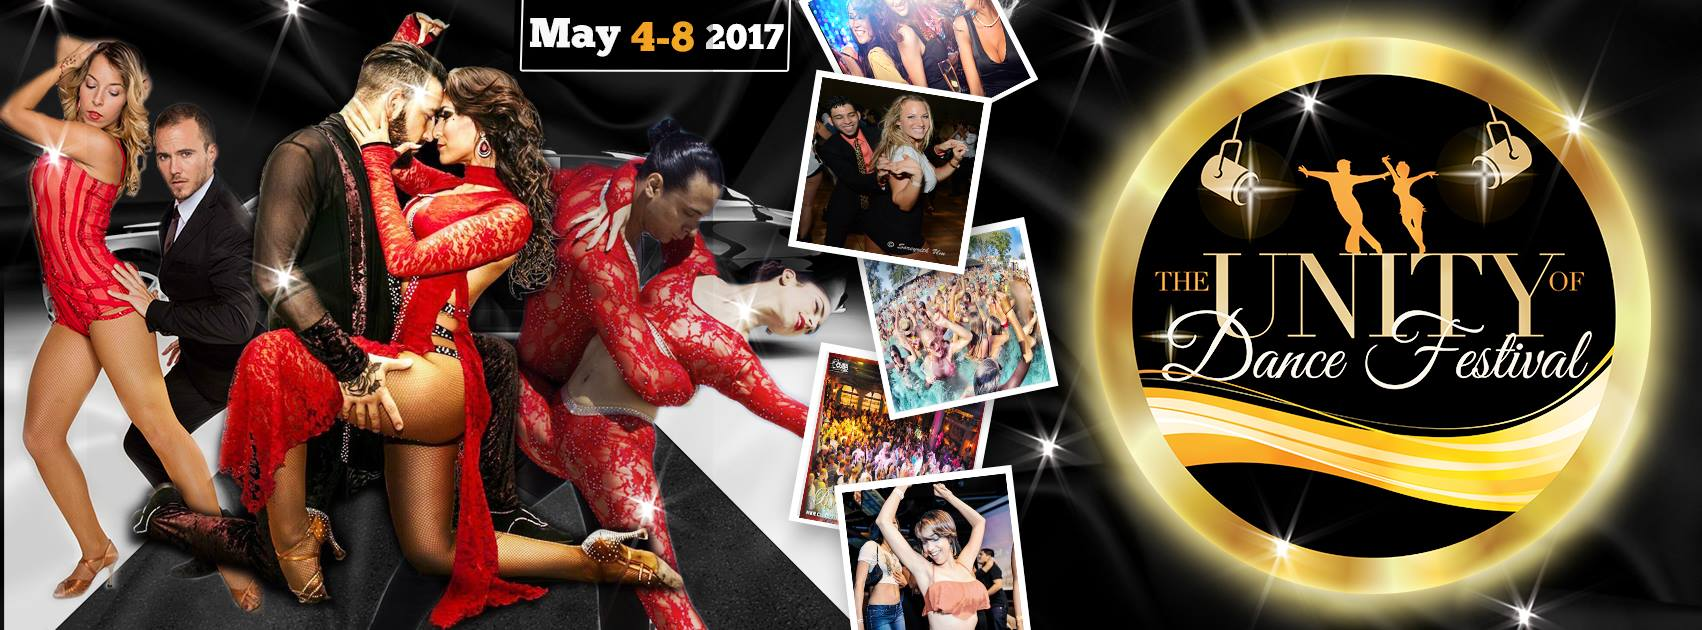 The Unity Of Dance Festival 2017